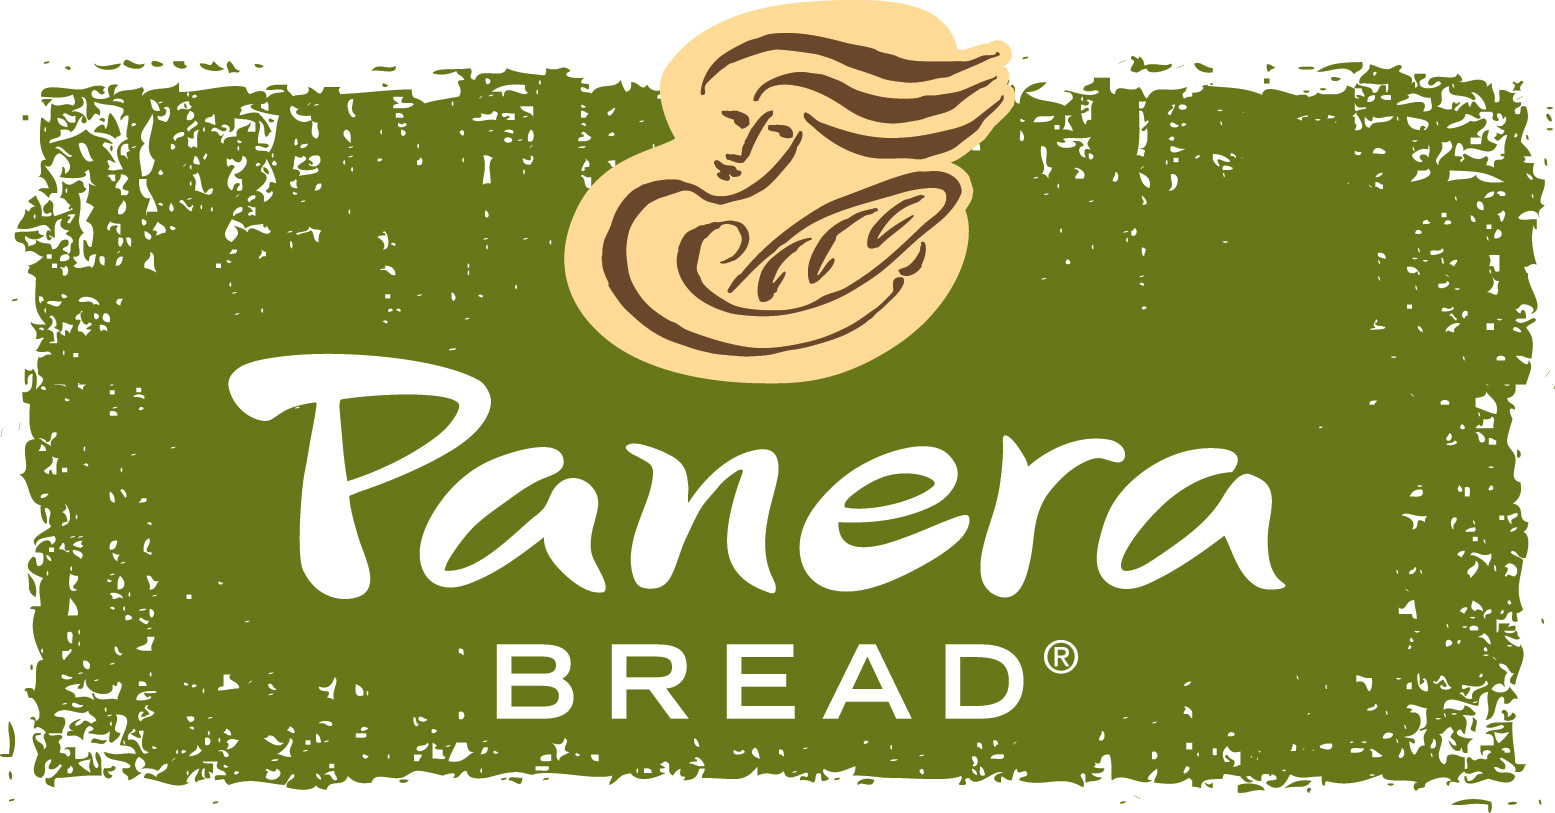 Panerabread.com (Panera Bread) Exposes Millions of Customers details for 8 months and lied about fixing it